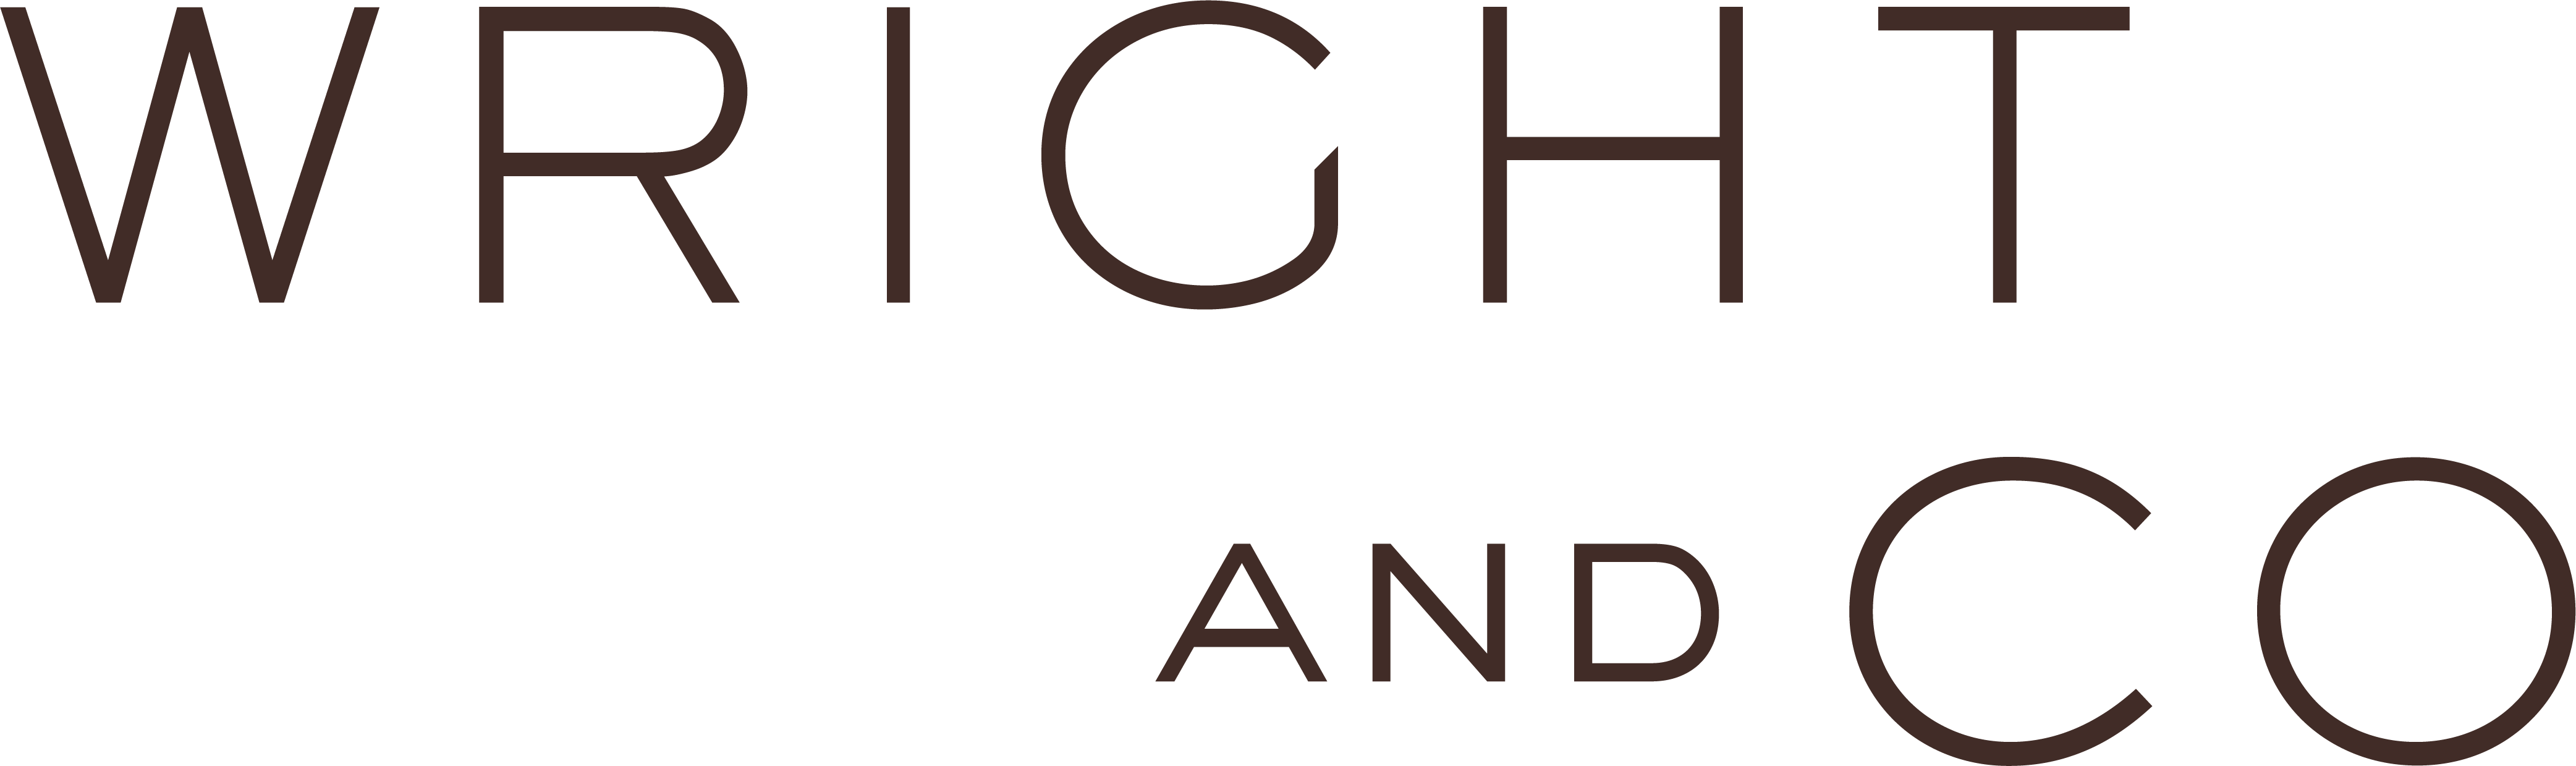 Wright & Co - A Full-Service Wedding Planning, Design & Event Team